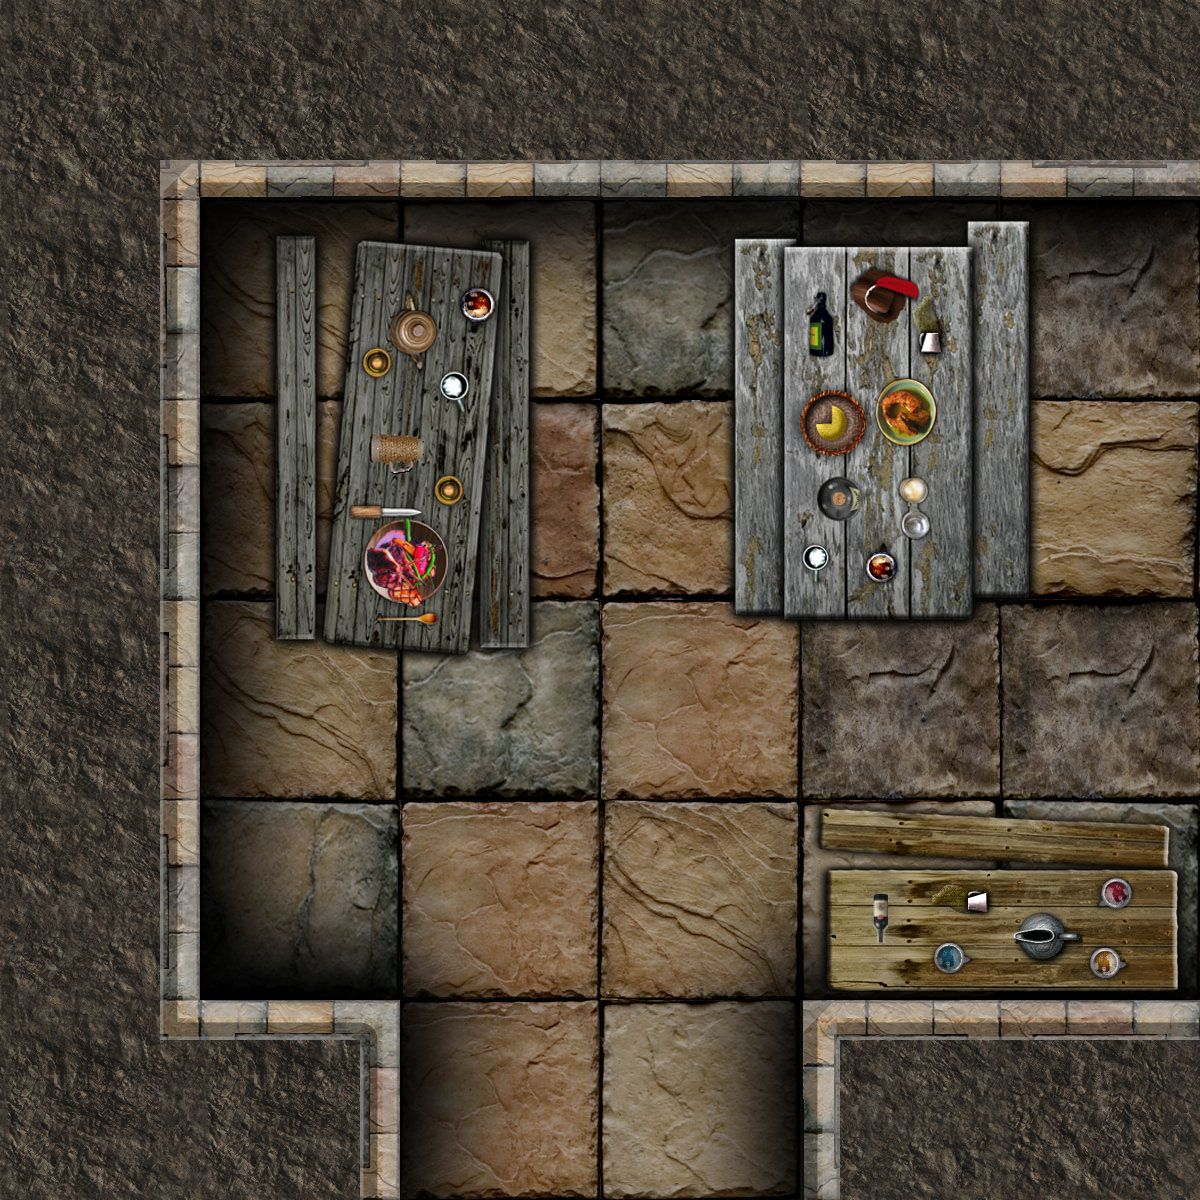 photo about Printable Dungeon Tiles Pdf named dungeon tiles pdf - Google Seem Tiles Dungeon tiles